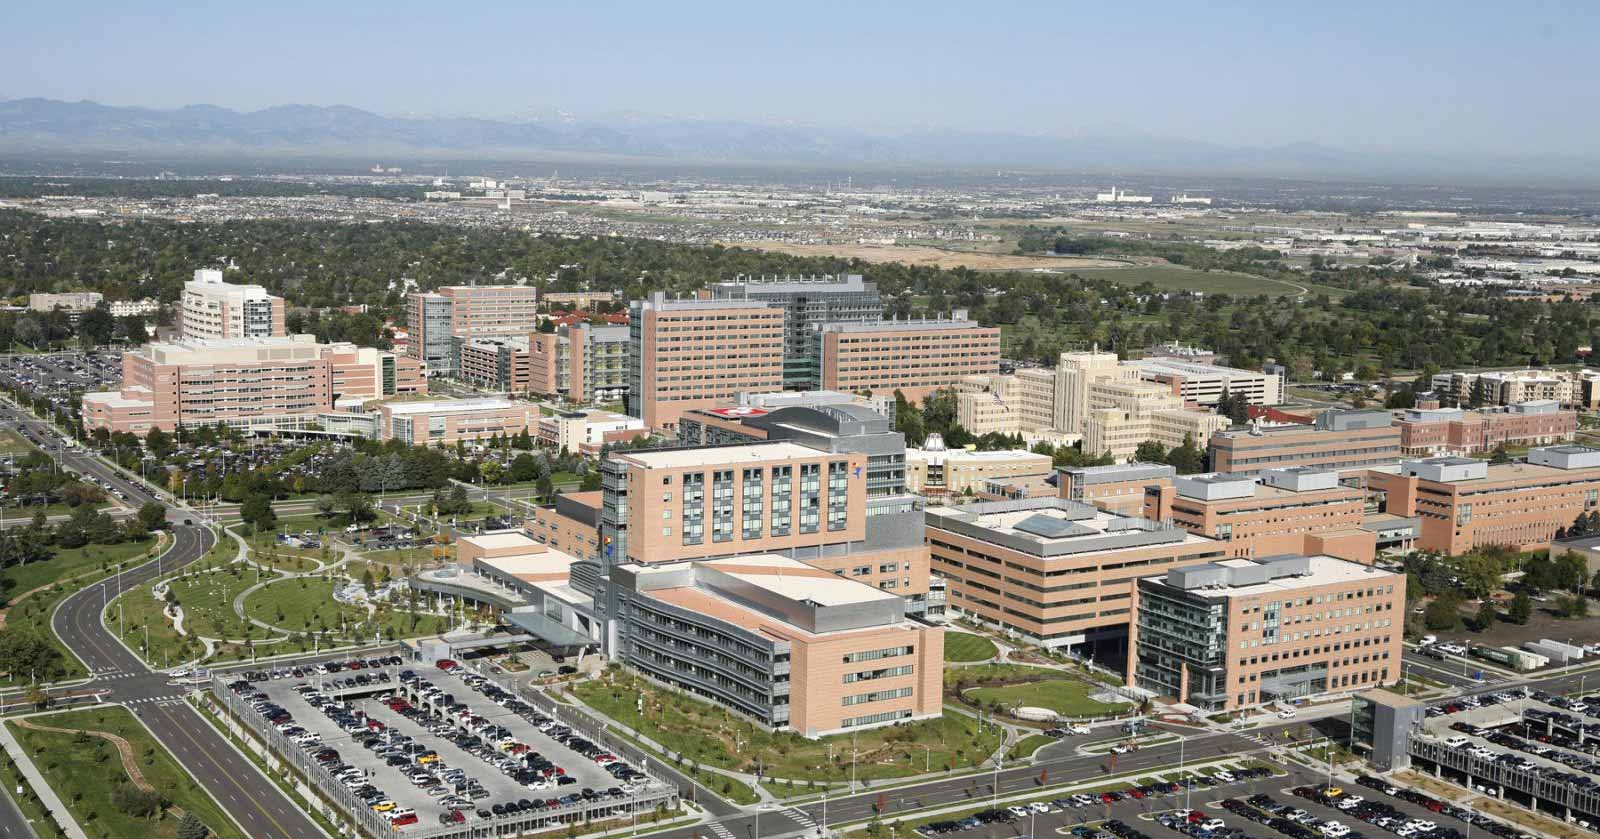 University of Colorado Anschutz Medical Campus